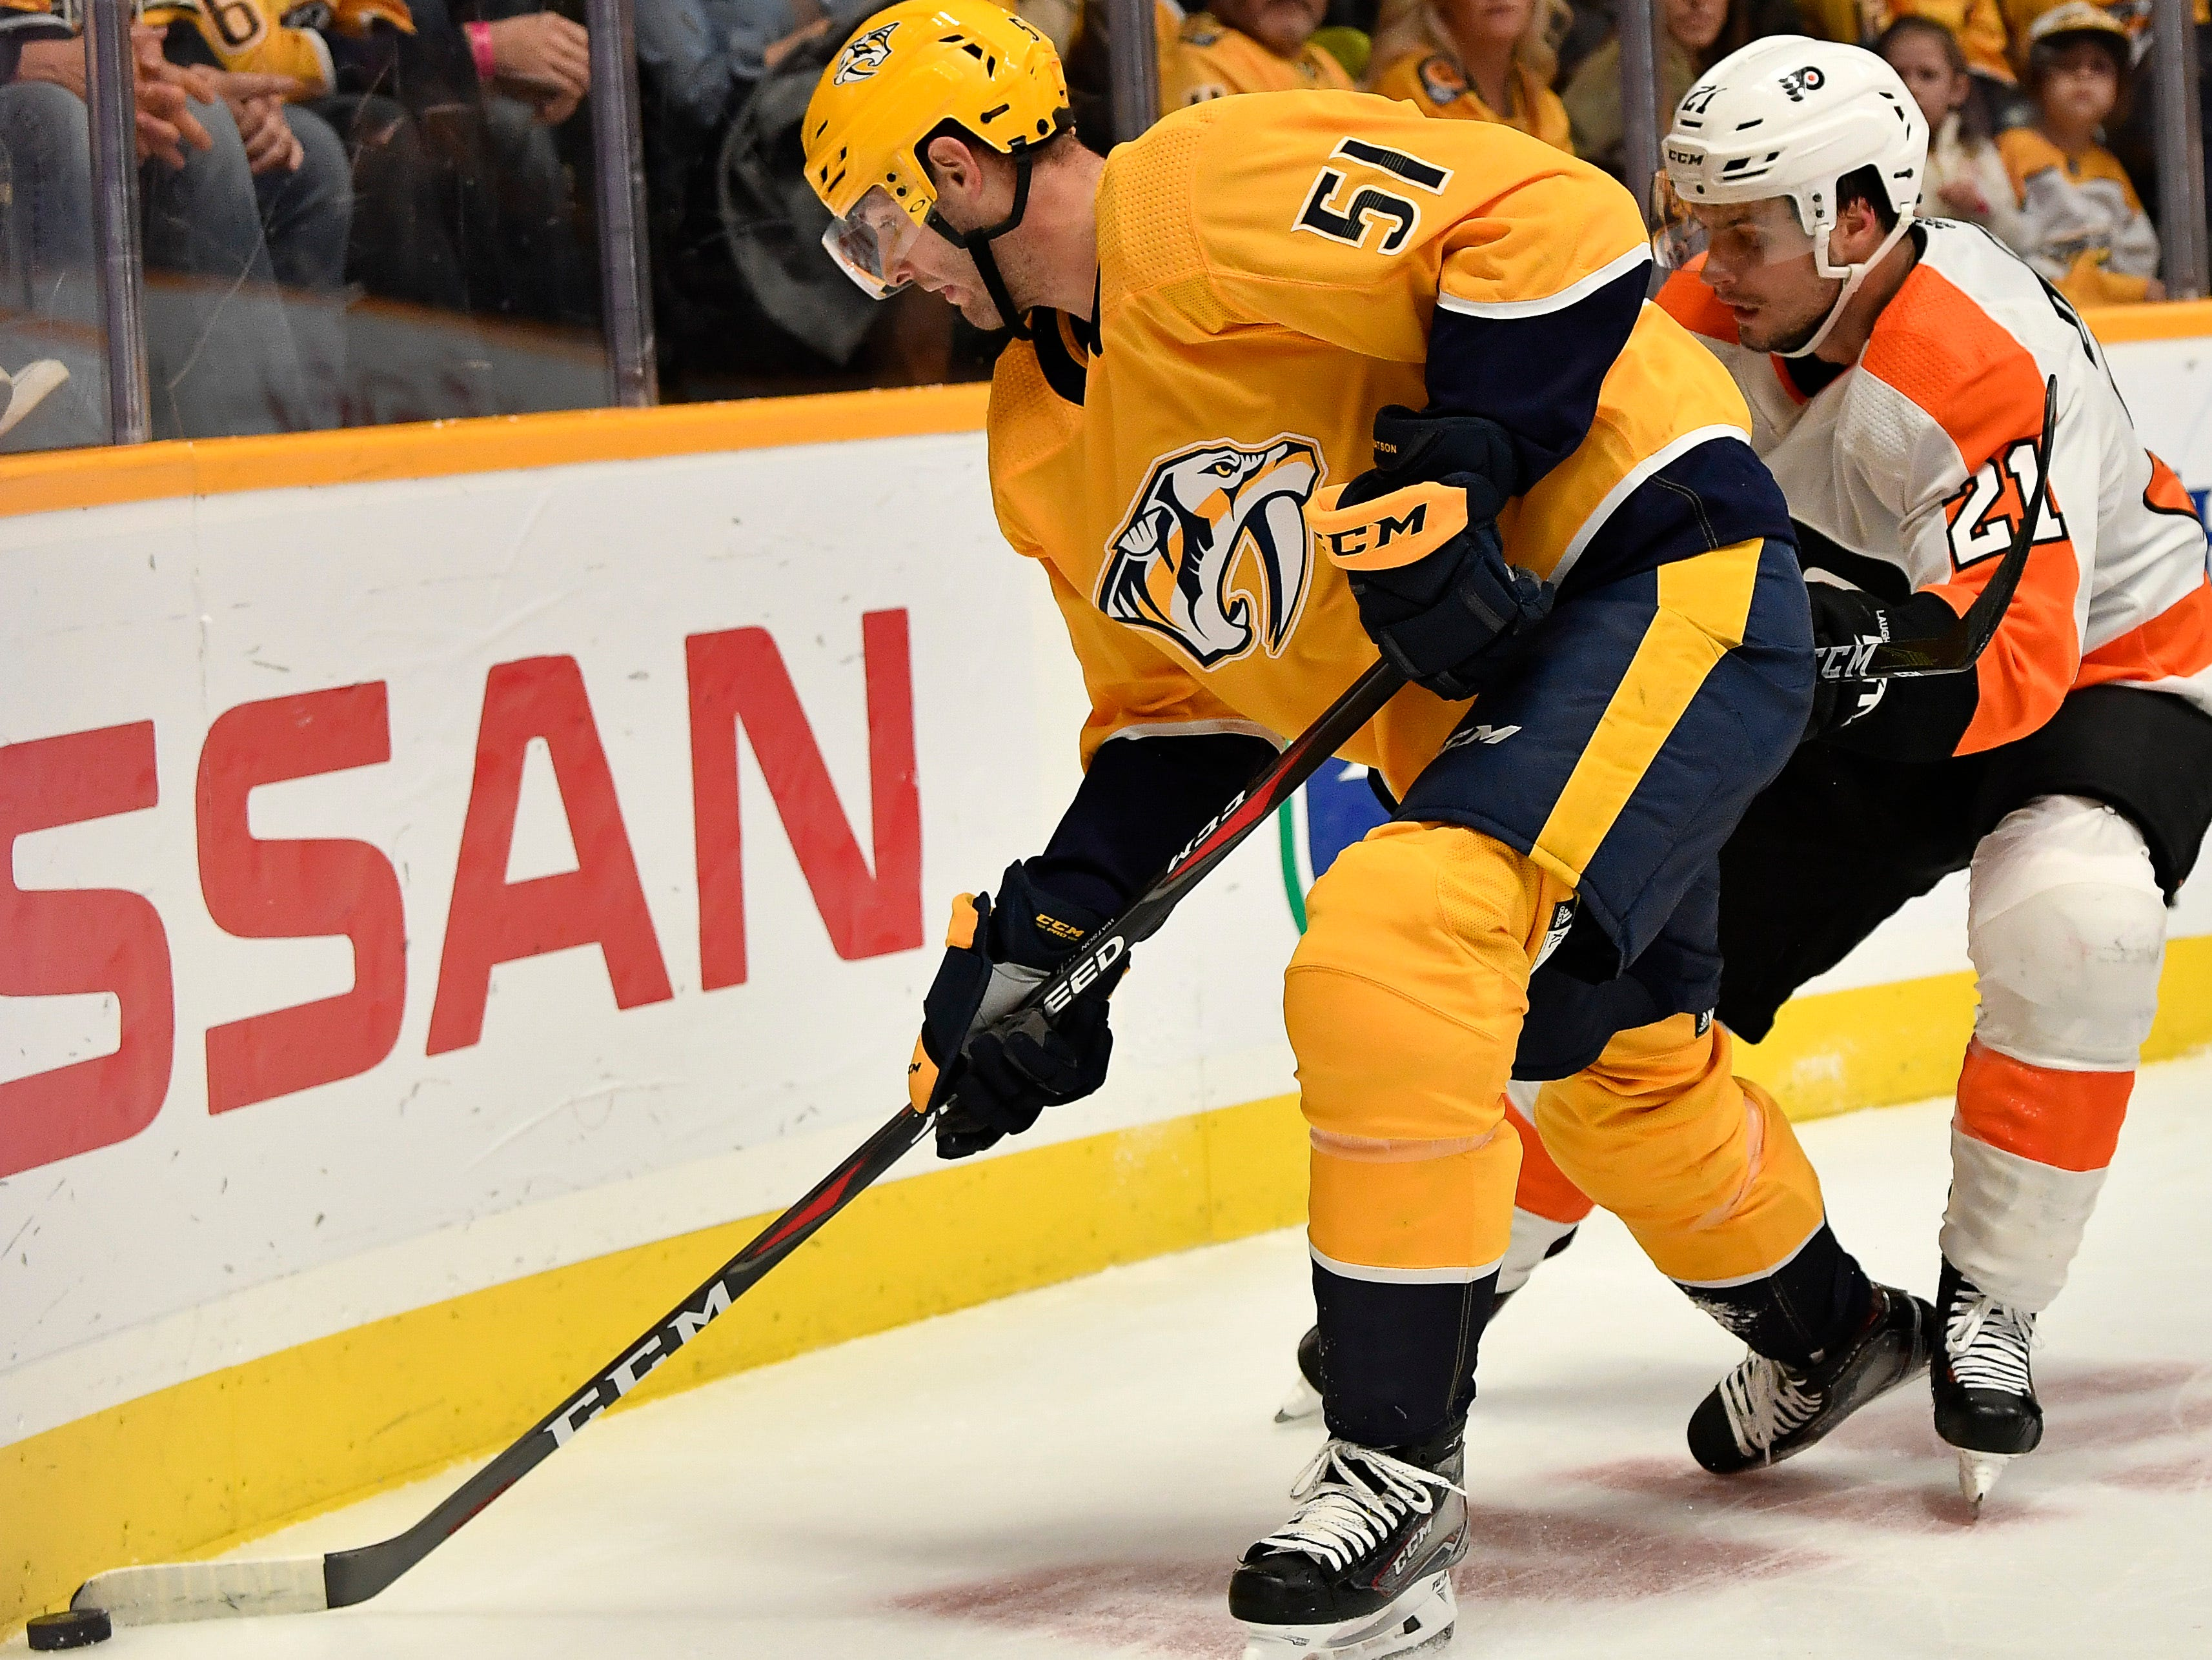 Predators left wing Austin Watson (51) keeps the puck from Flyers center Scott Laughton (21) during the first period at Bridgestone Arena Tuesday, Jan. 1, 2019, in Nashville, Tenn.